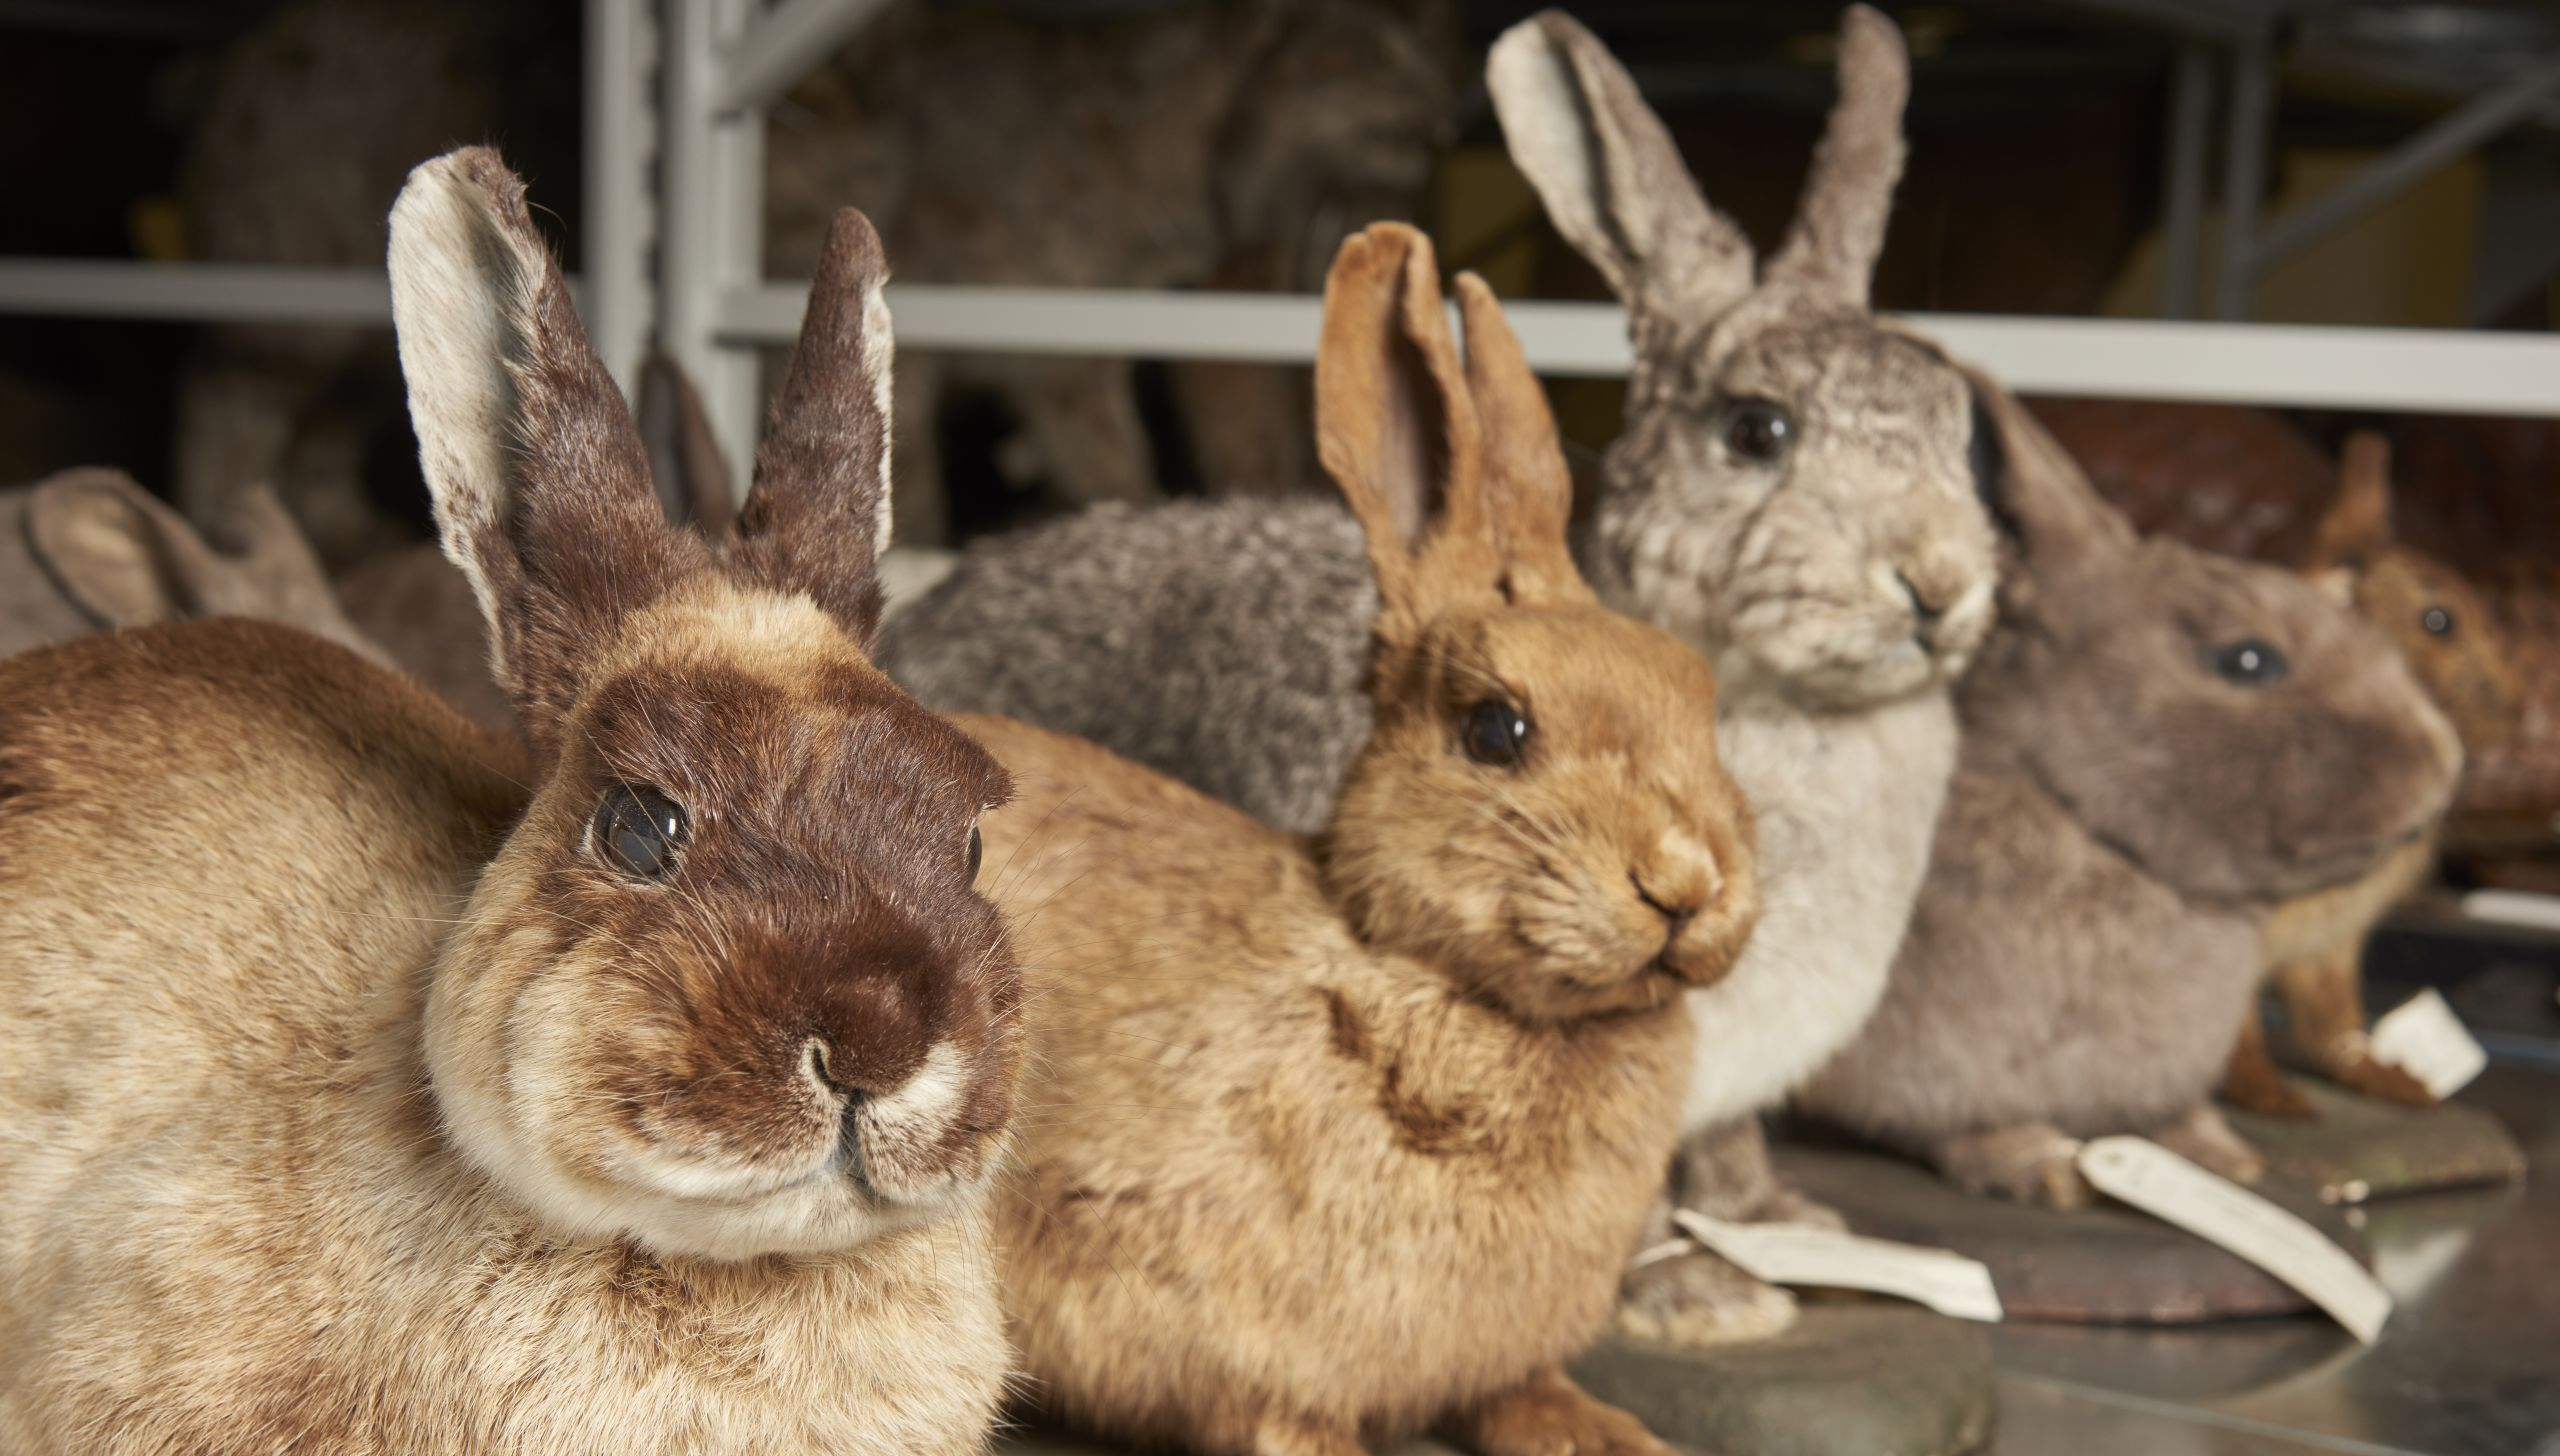 Rabbit collections at the Natural History Museum in London. Image courtesy of the Trustees of the Natural History Museum.